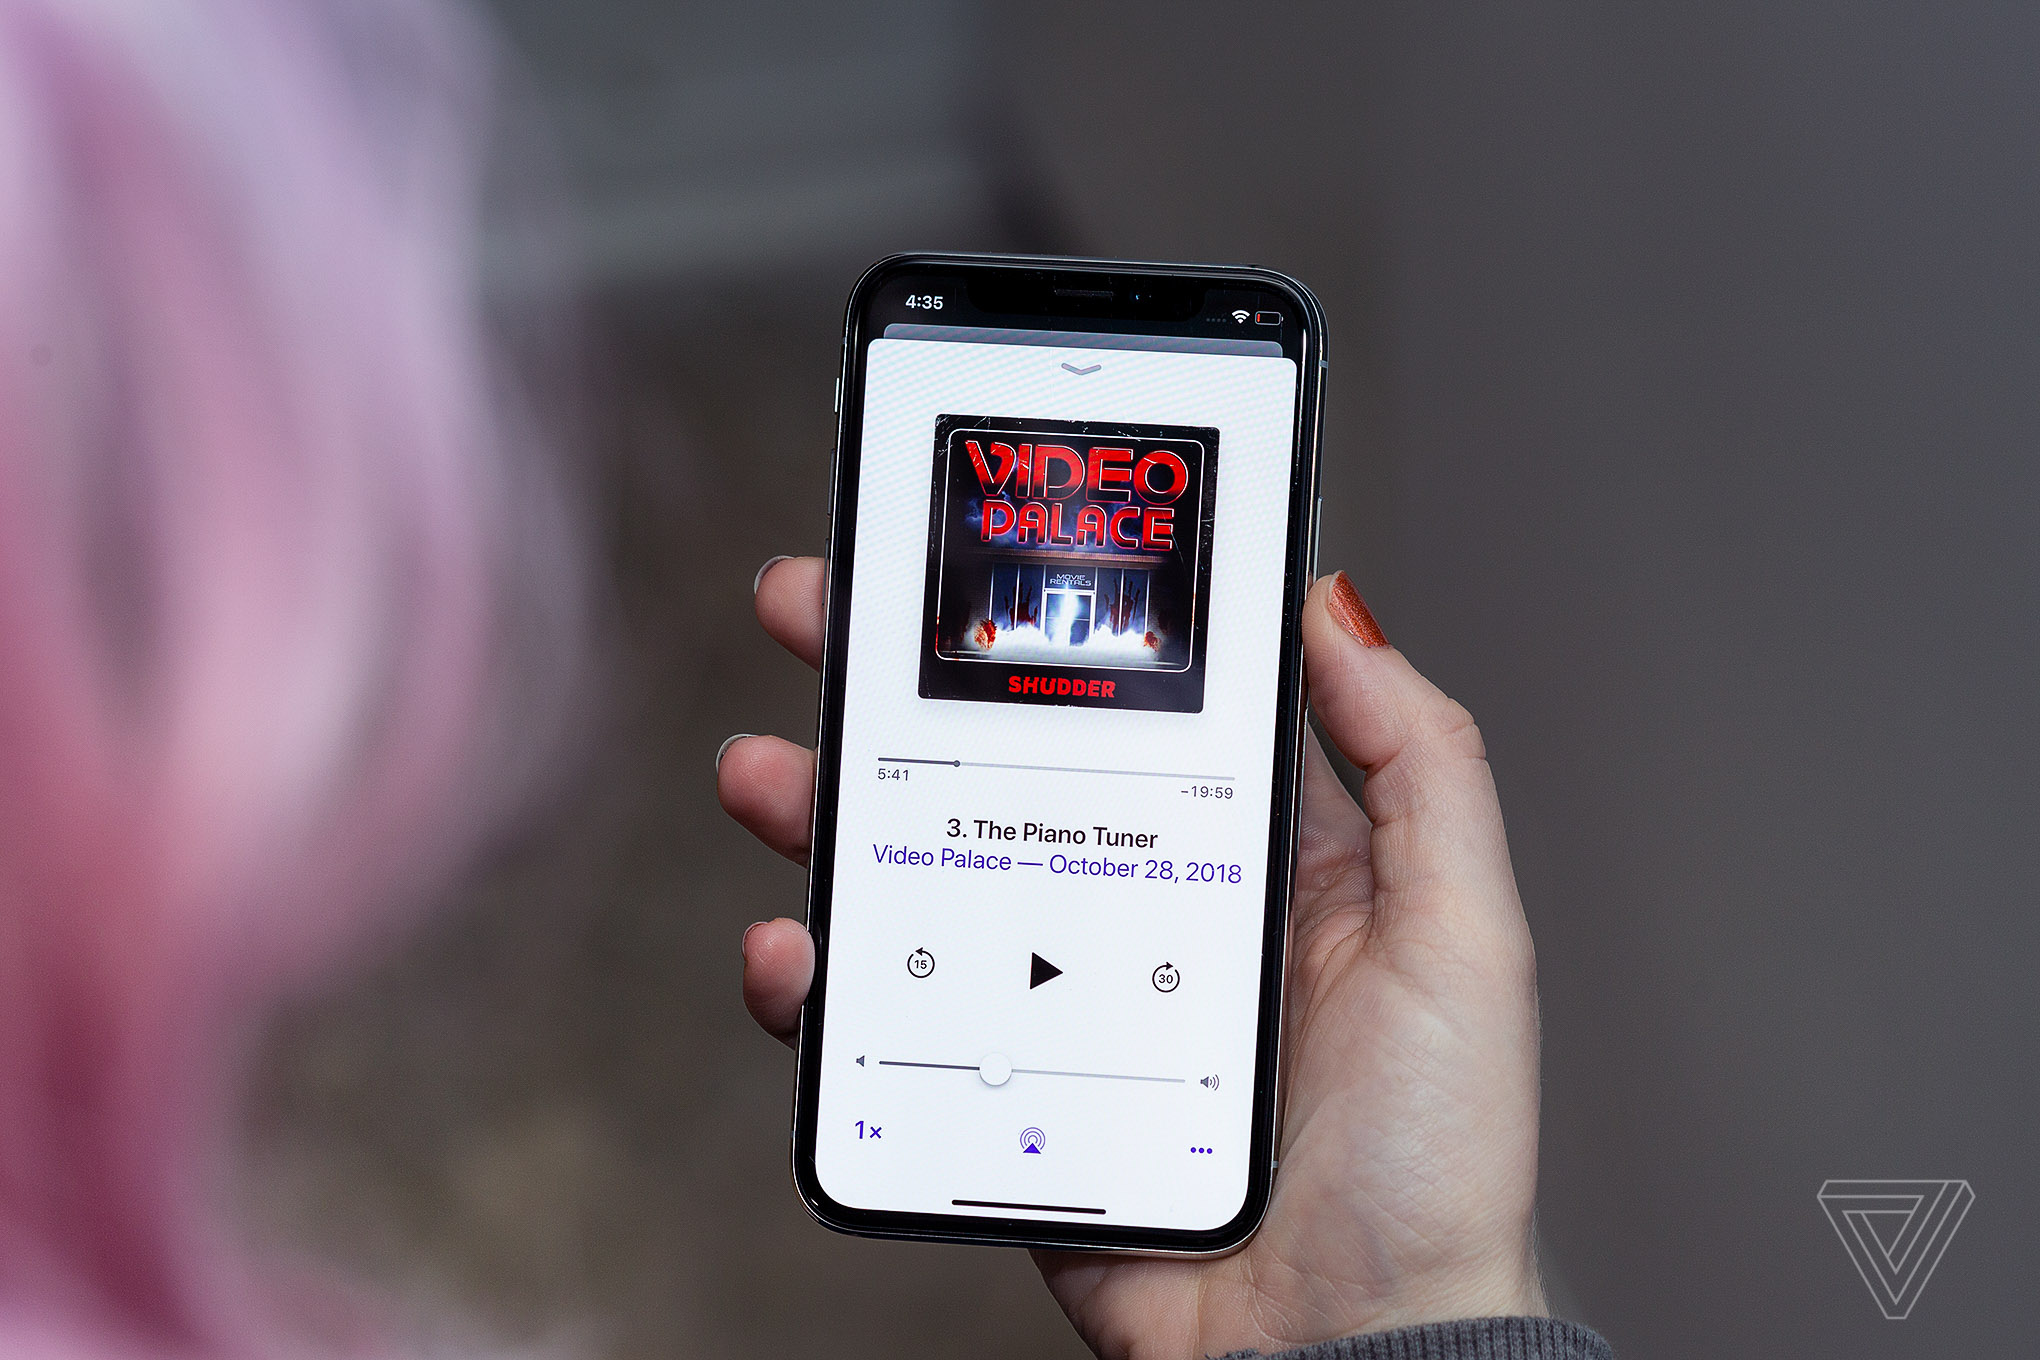 10 scary podcasts to listen to in the dark - The Verge